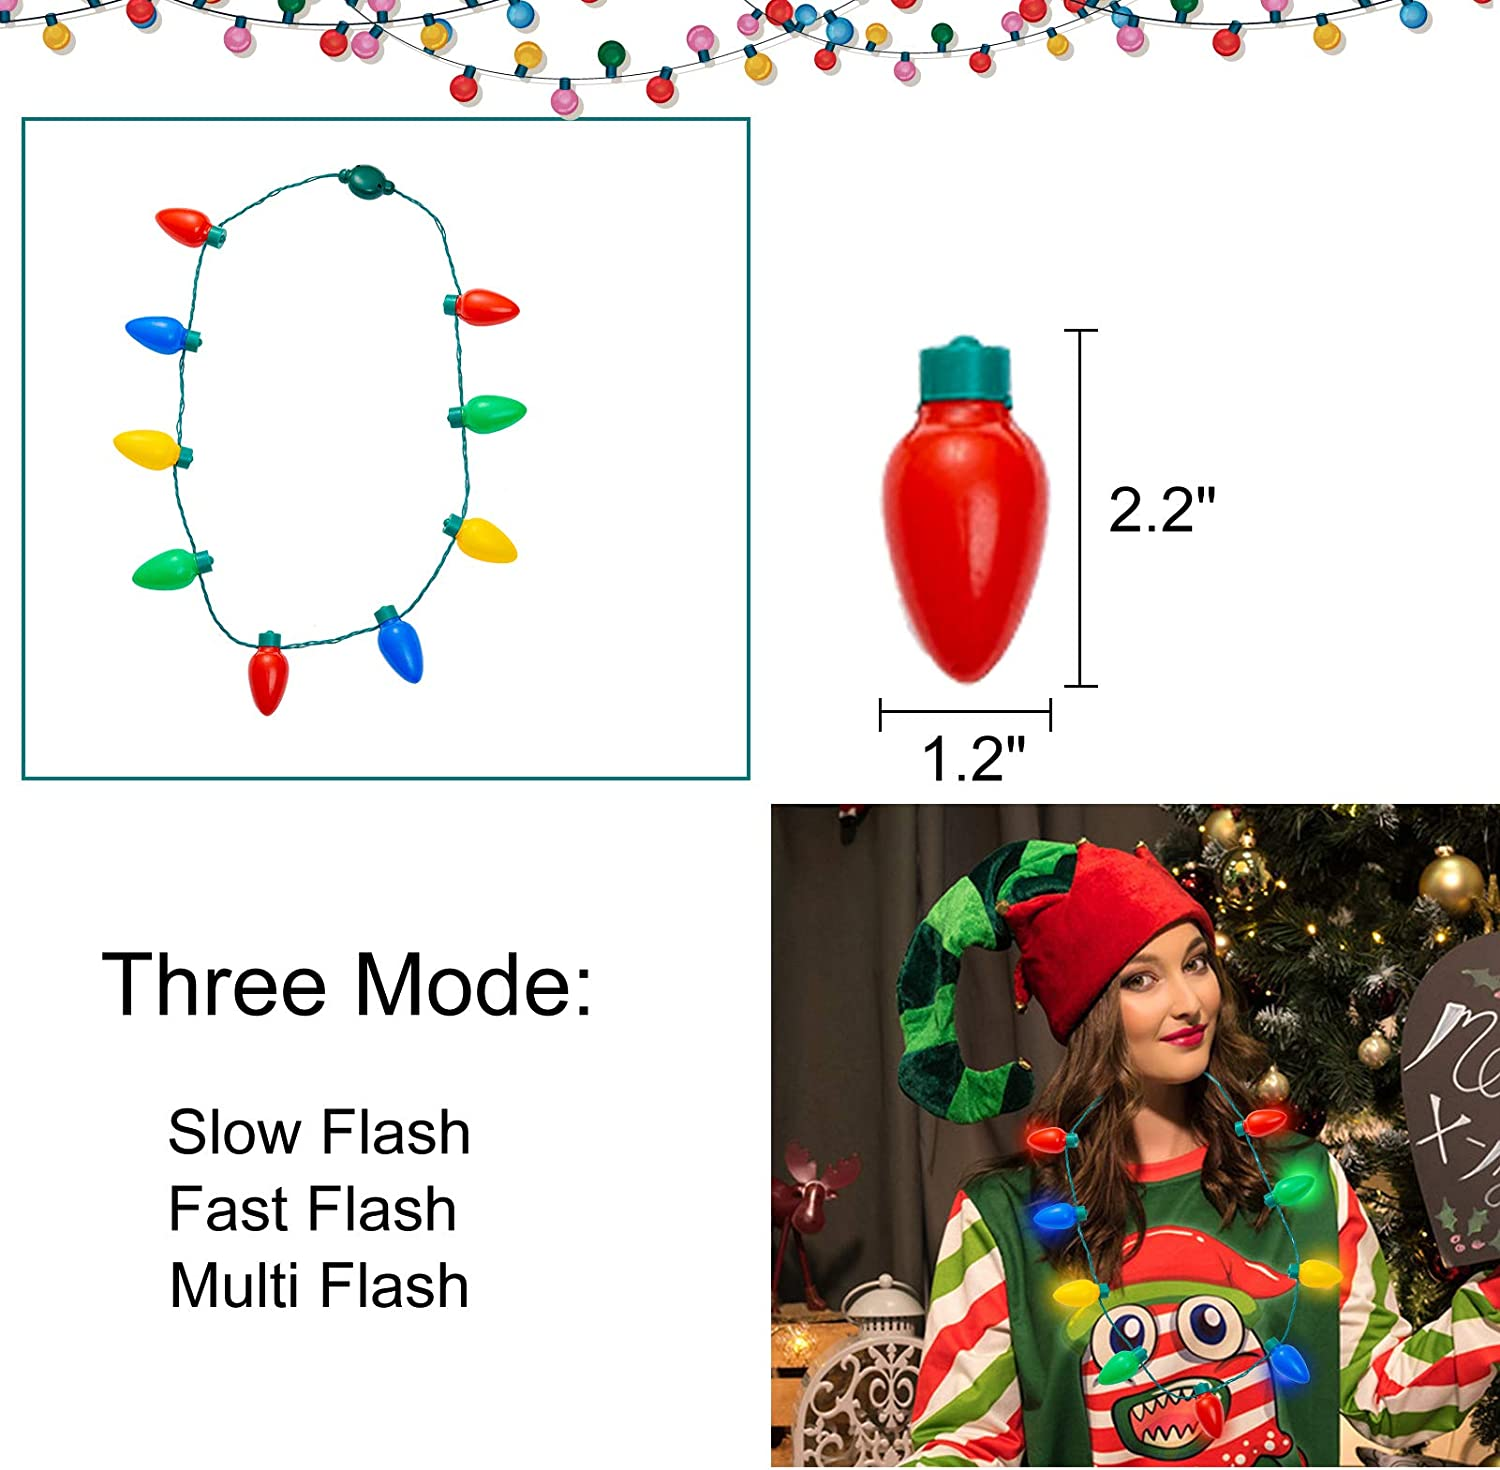 9 Bulbs Xmas Light Necklace for Adults and Kids Batteries Included Ugly Sweater Party Accessory Christmas Decoration Party Favors and Supplies 6 Pack Christmas LED Light up Bulb Necklace